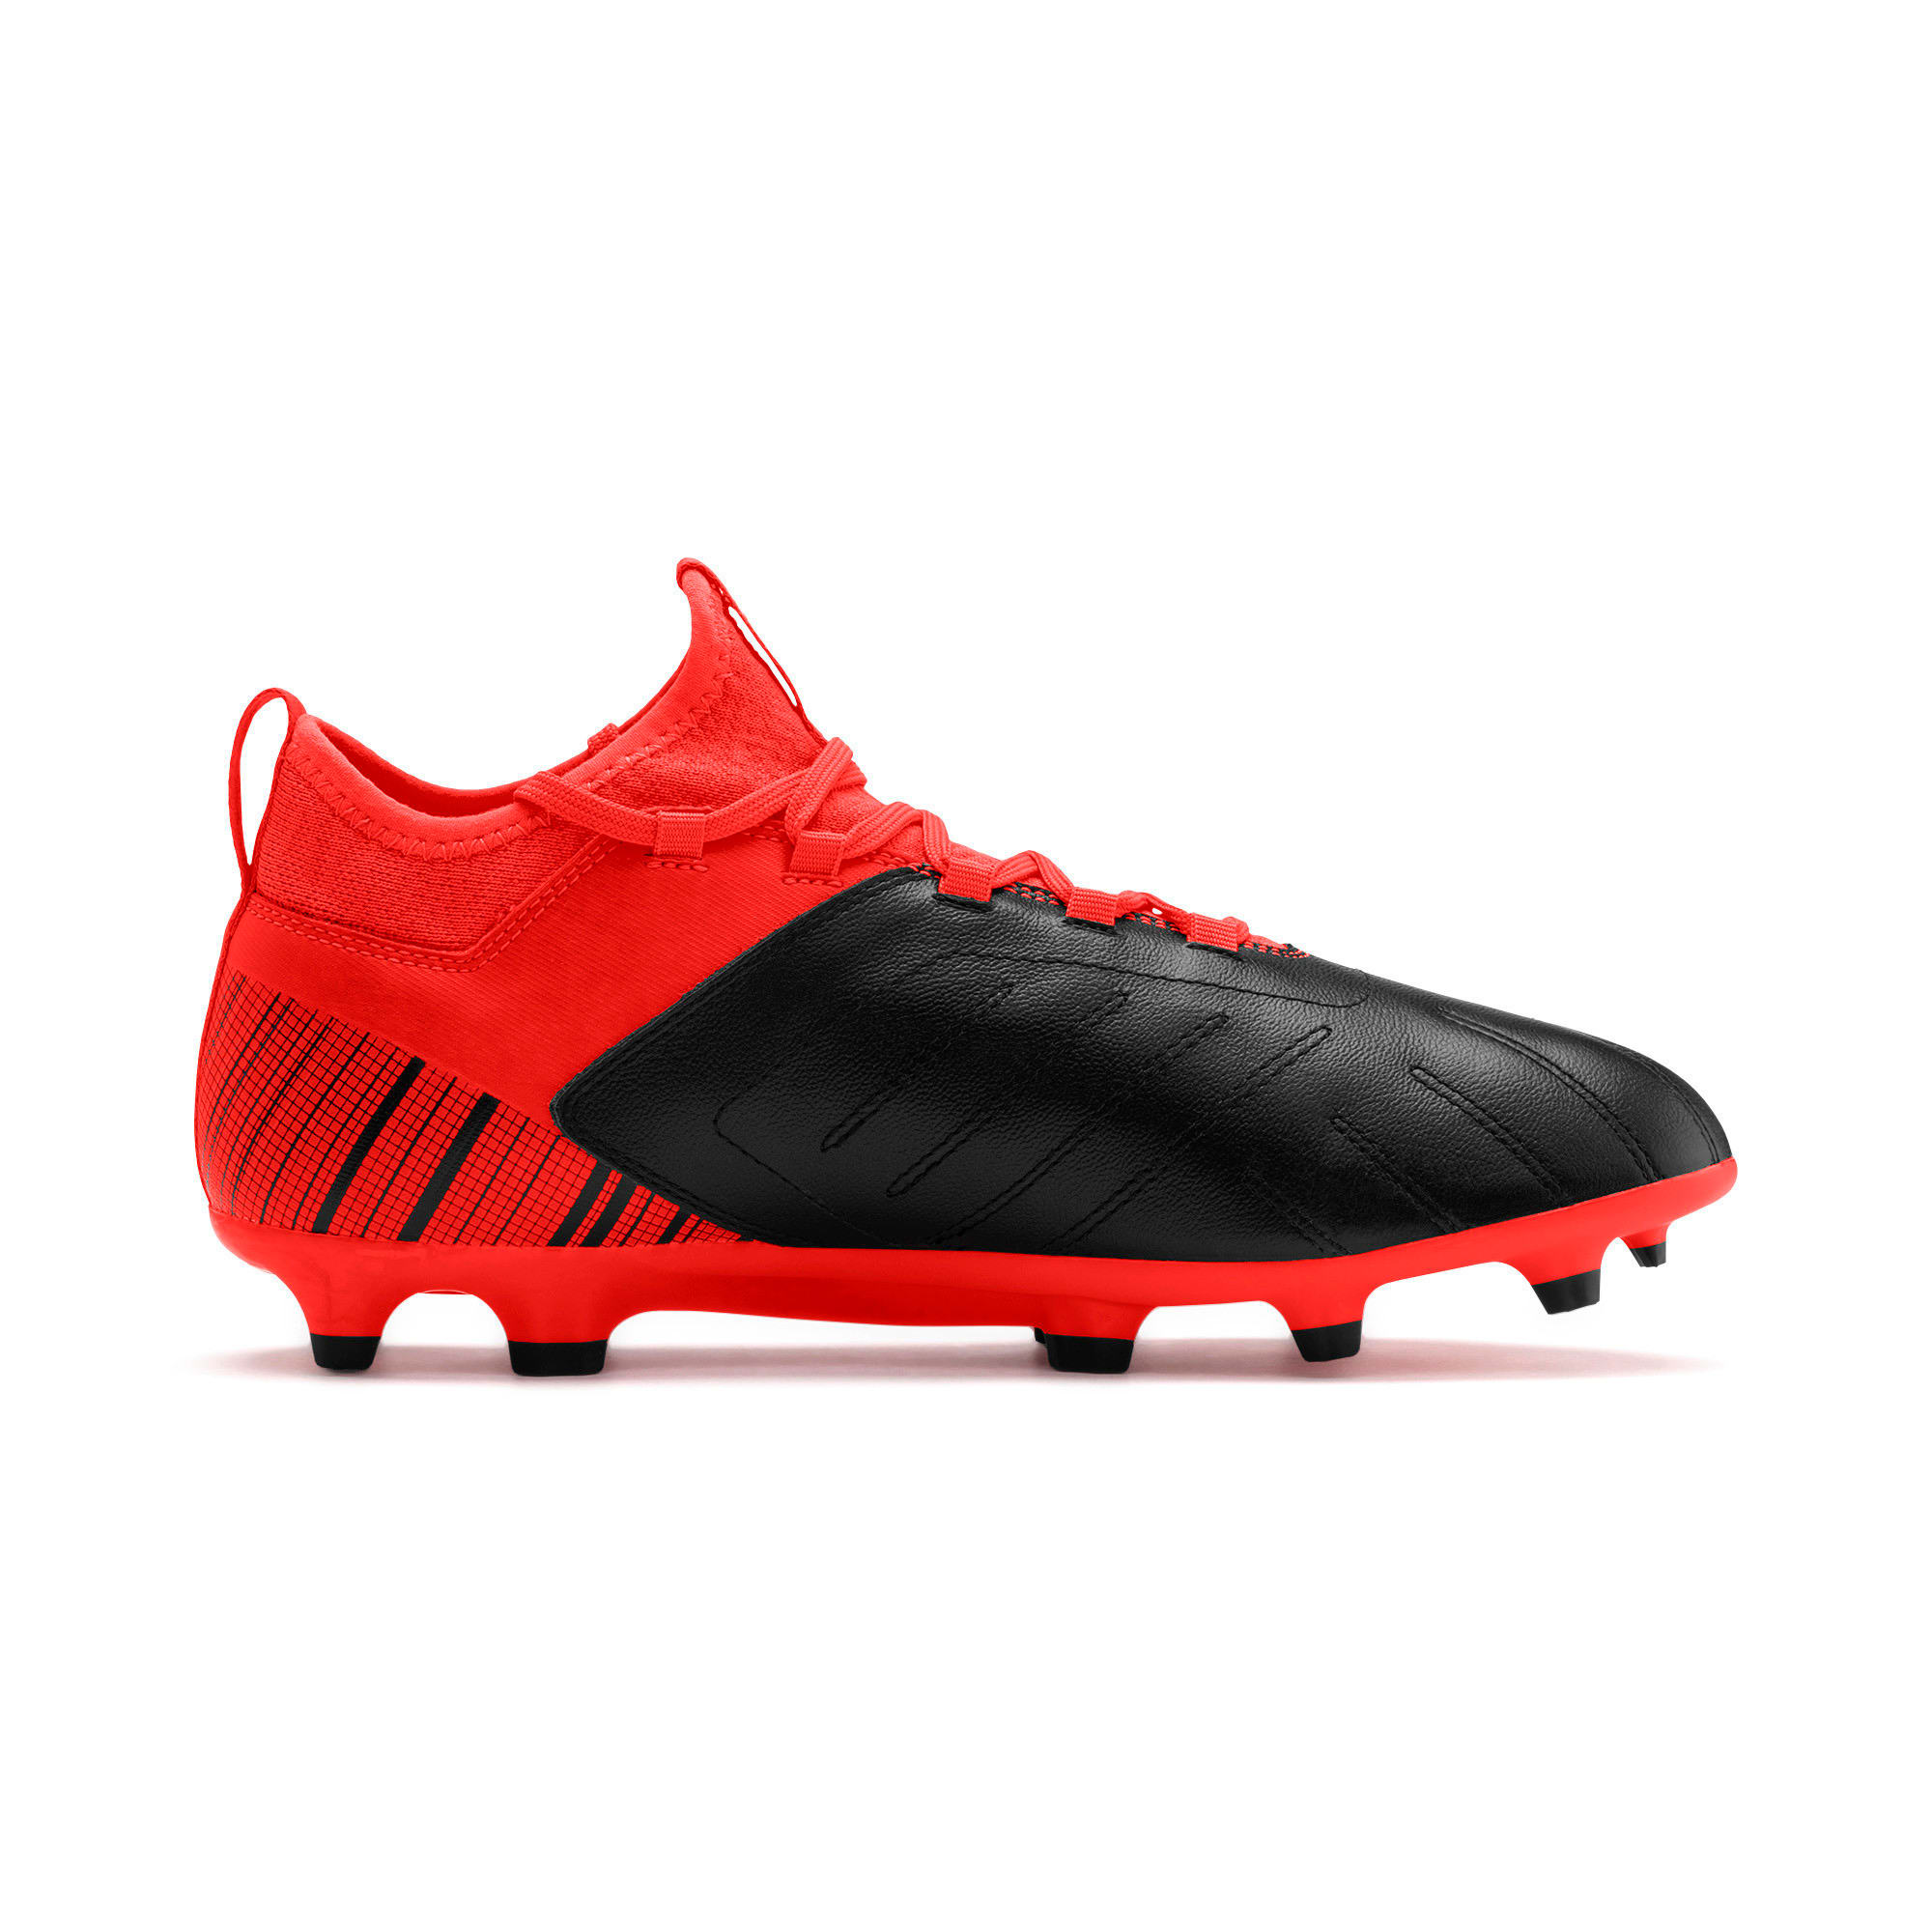 Thumbnail 6 of PUMA ONE 5.3 FG/AG Men's Football Boots, Black-Nrgy Red-Aged Silver, medium